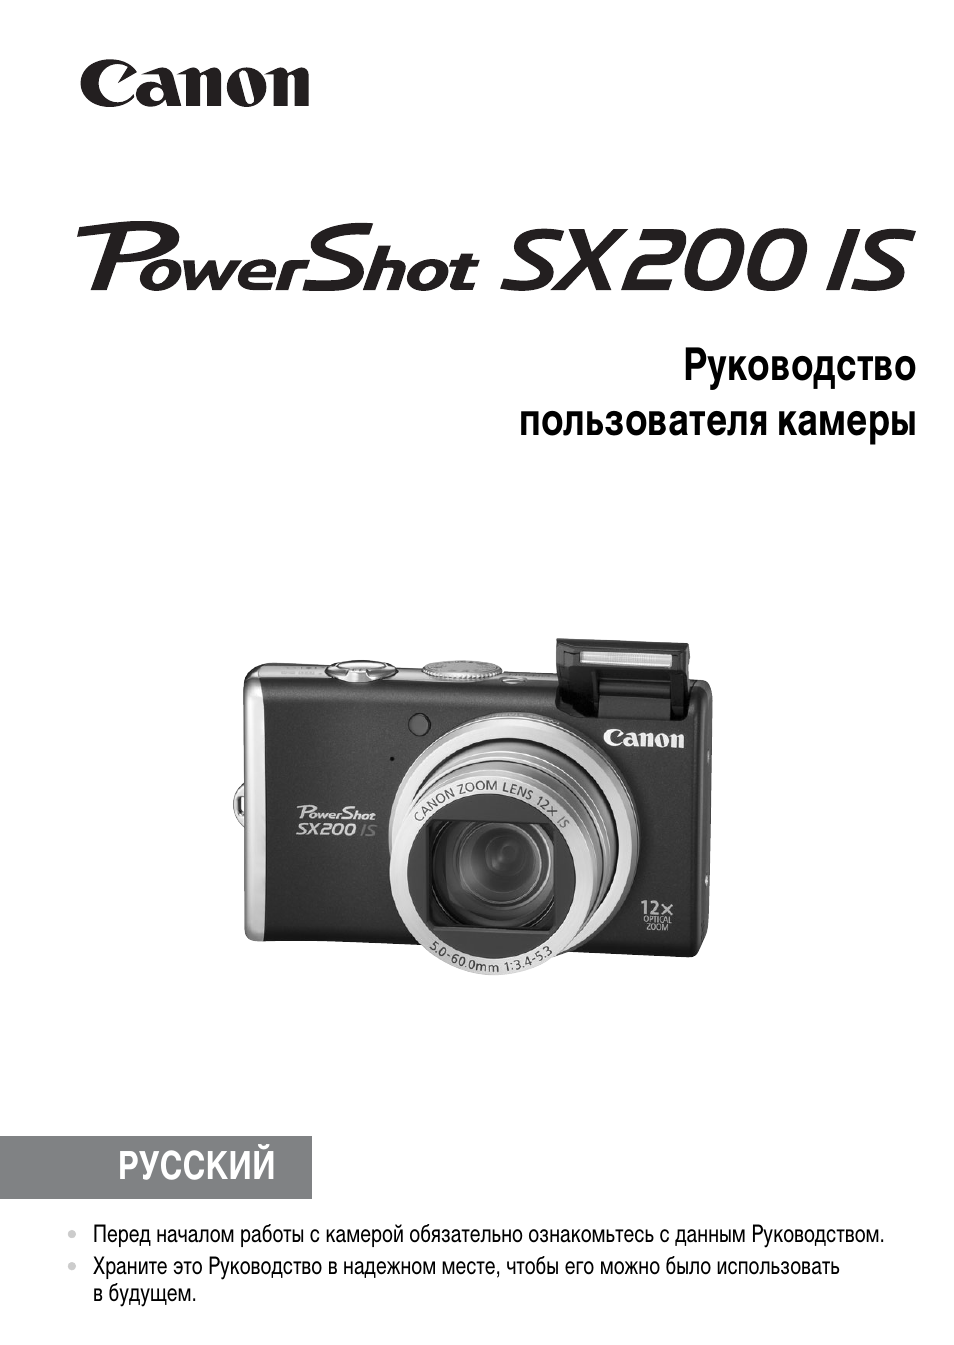 Инструкция canon sx200 is powershot